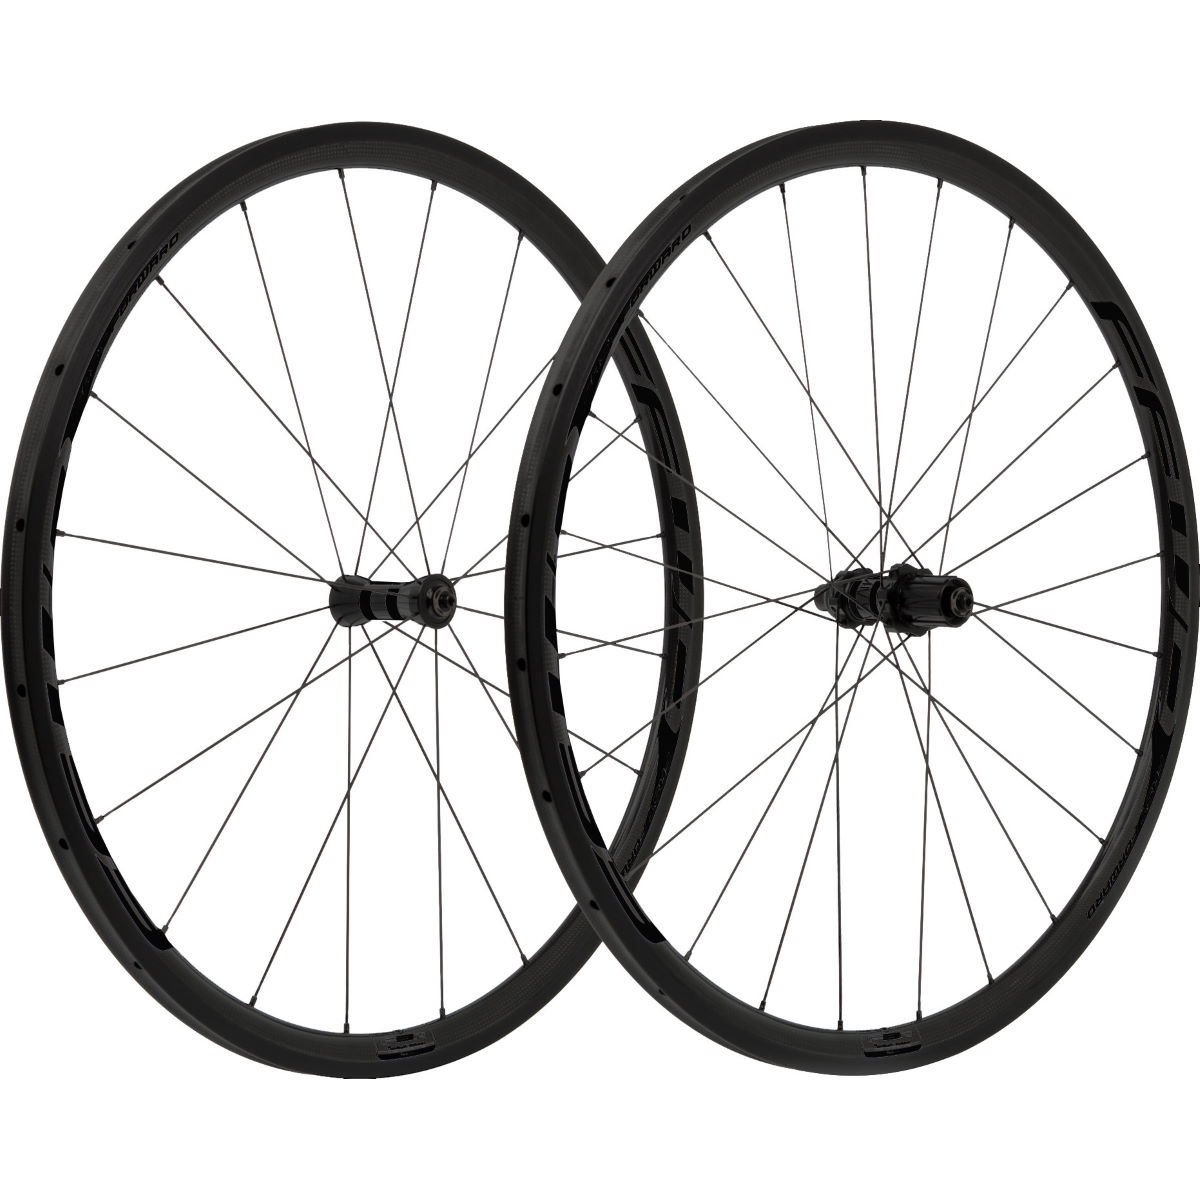 Fast Forward Carbon F4R FCC TLR 45mm SP Wheelset - Juegos de ruedas